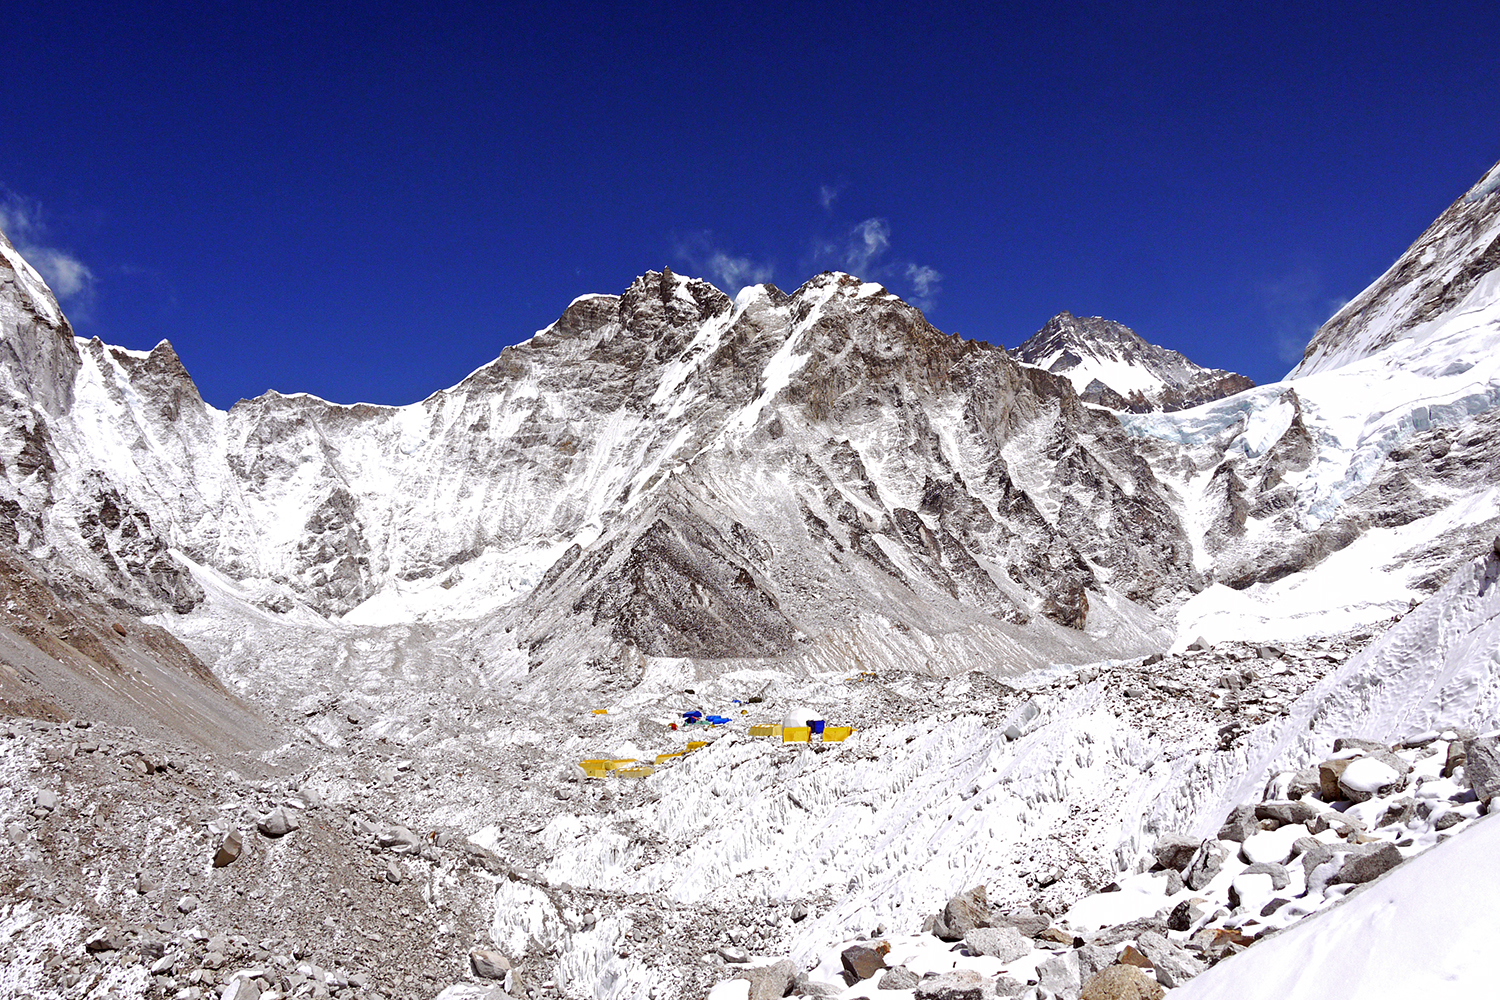 Blue skies over Everest Base Camp